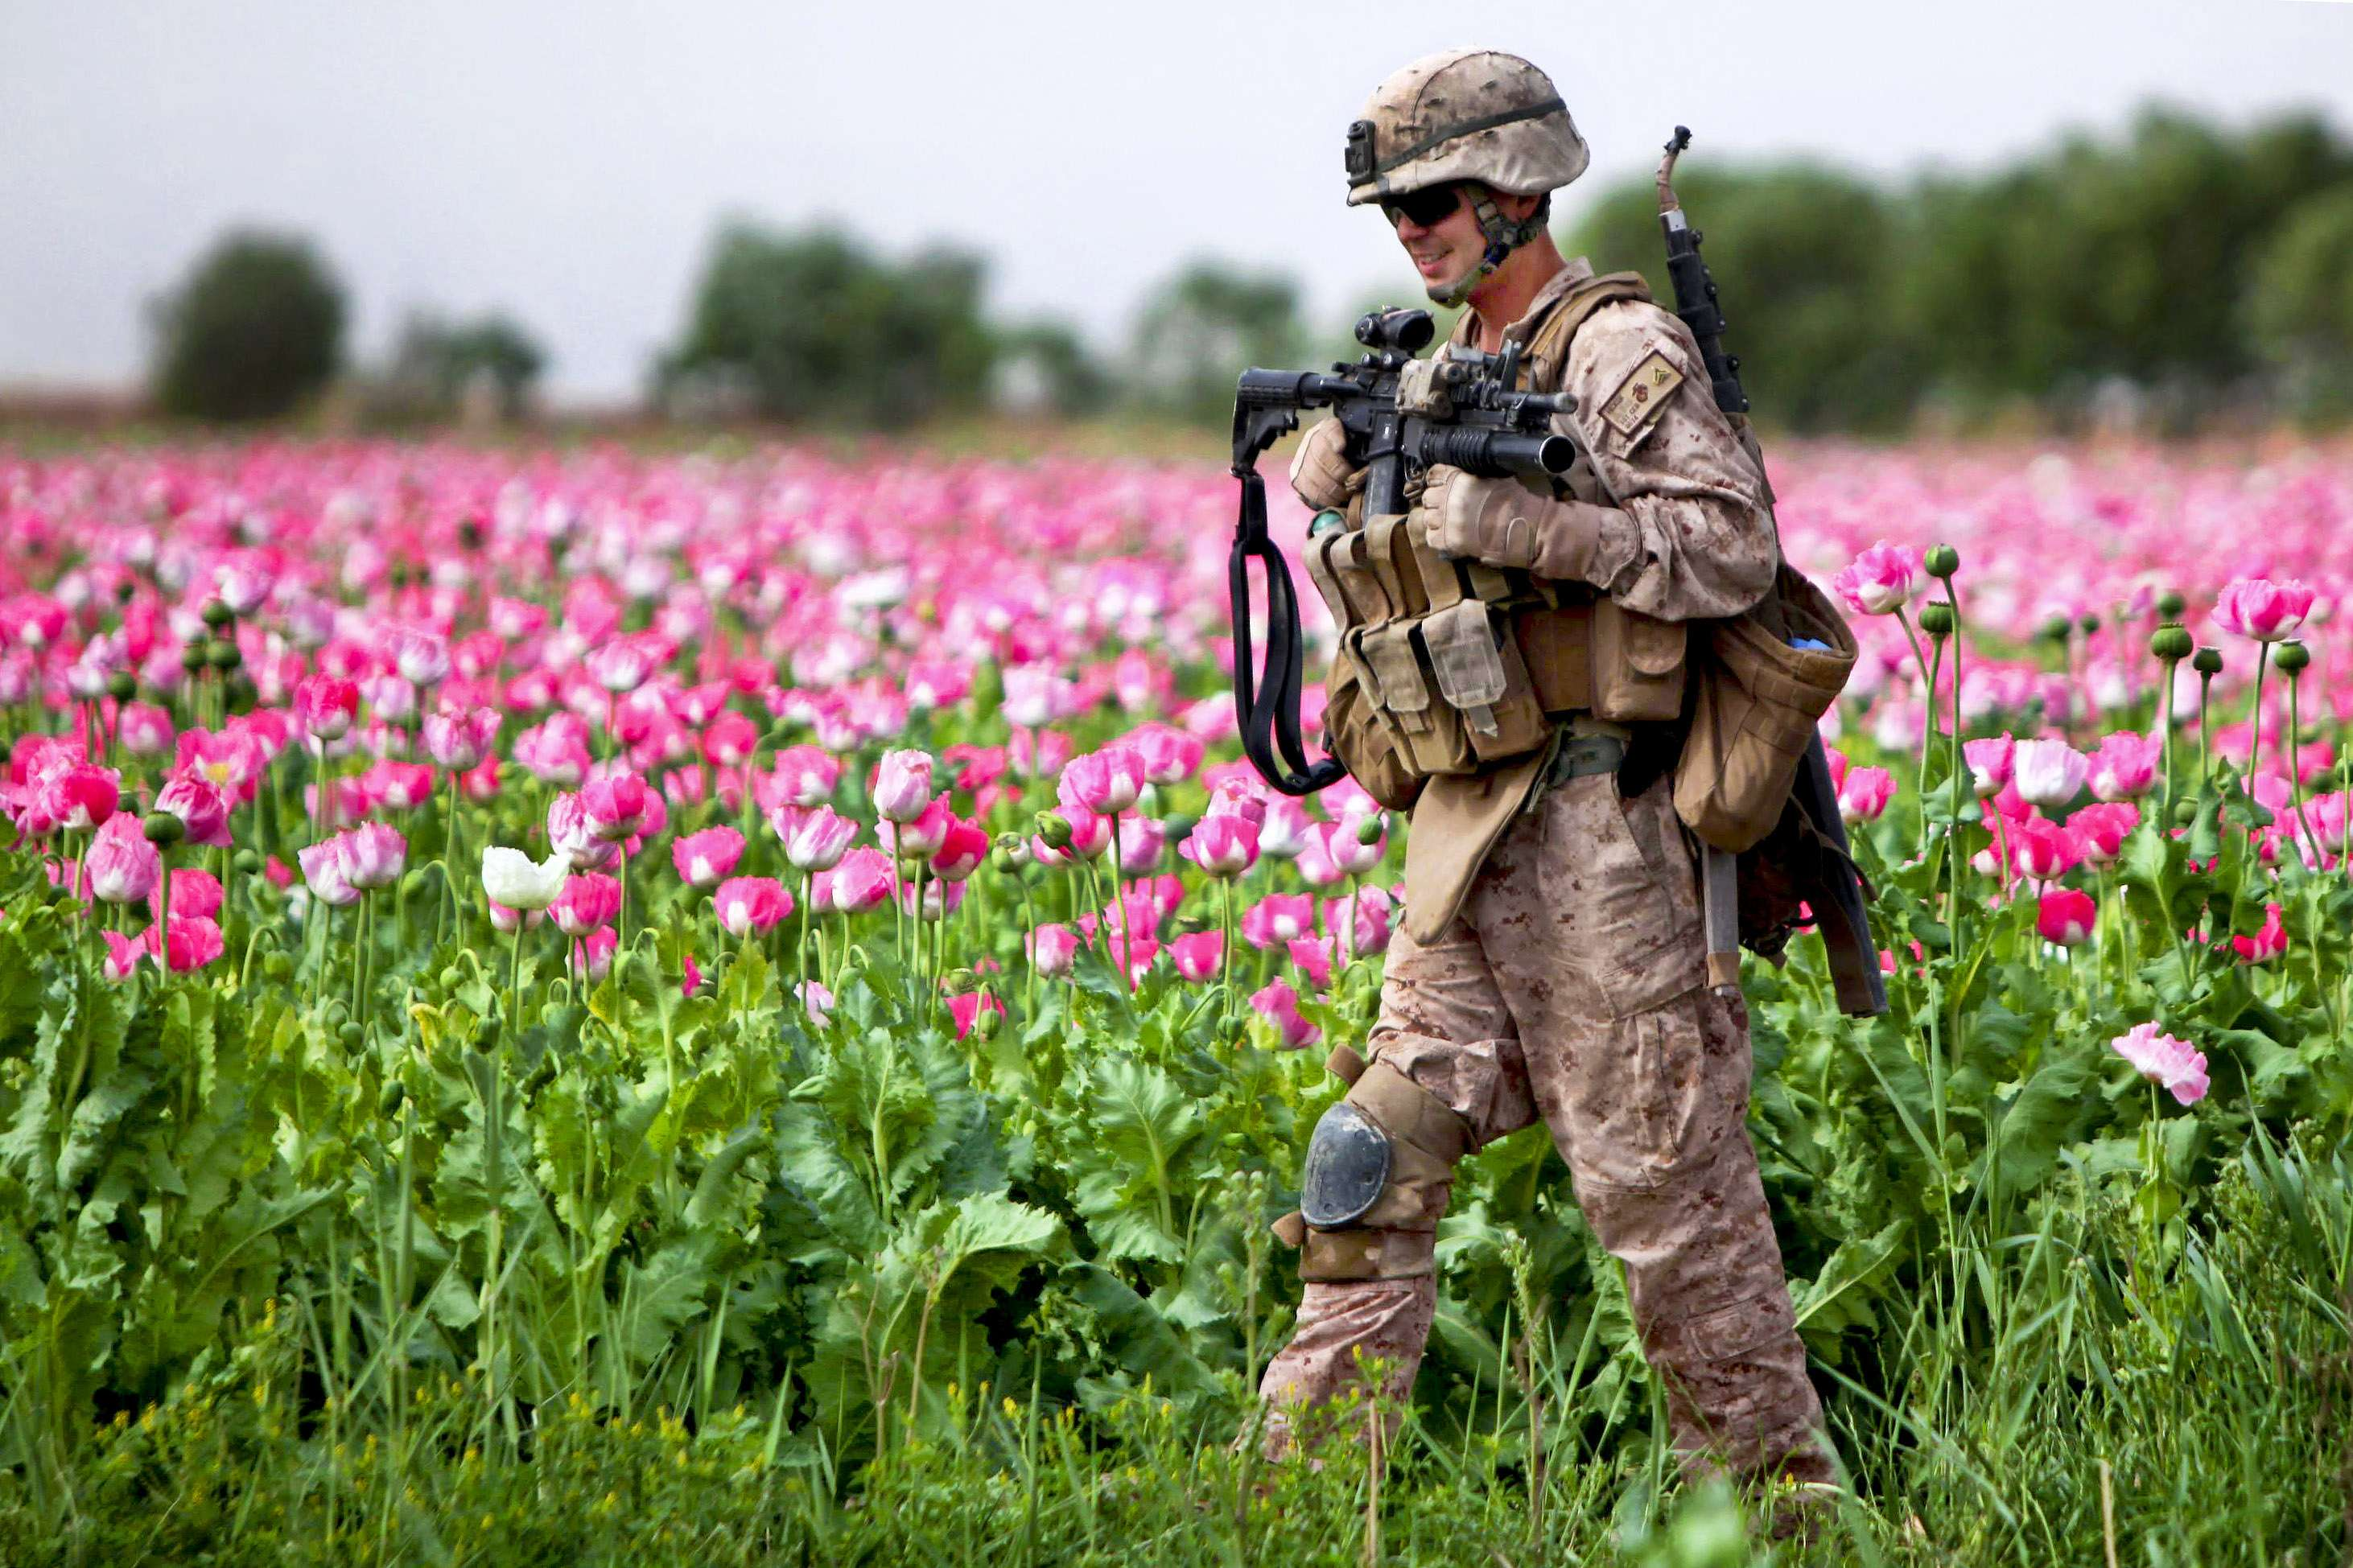 U.S. Marine Corps Cpl. Mark Hickok patrols through a field during a clearing mission in Marja in Afghanistan's Helmand province on April 9, 2011. (Image Credit: U.S. Marine Corps/John M. McCall)